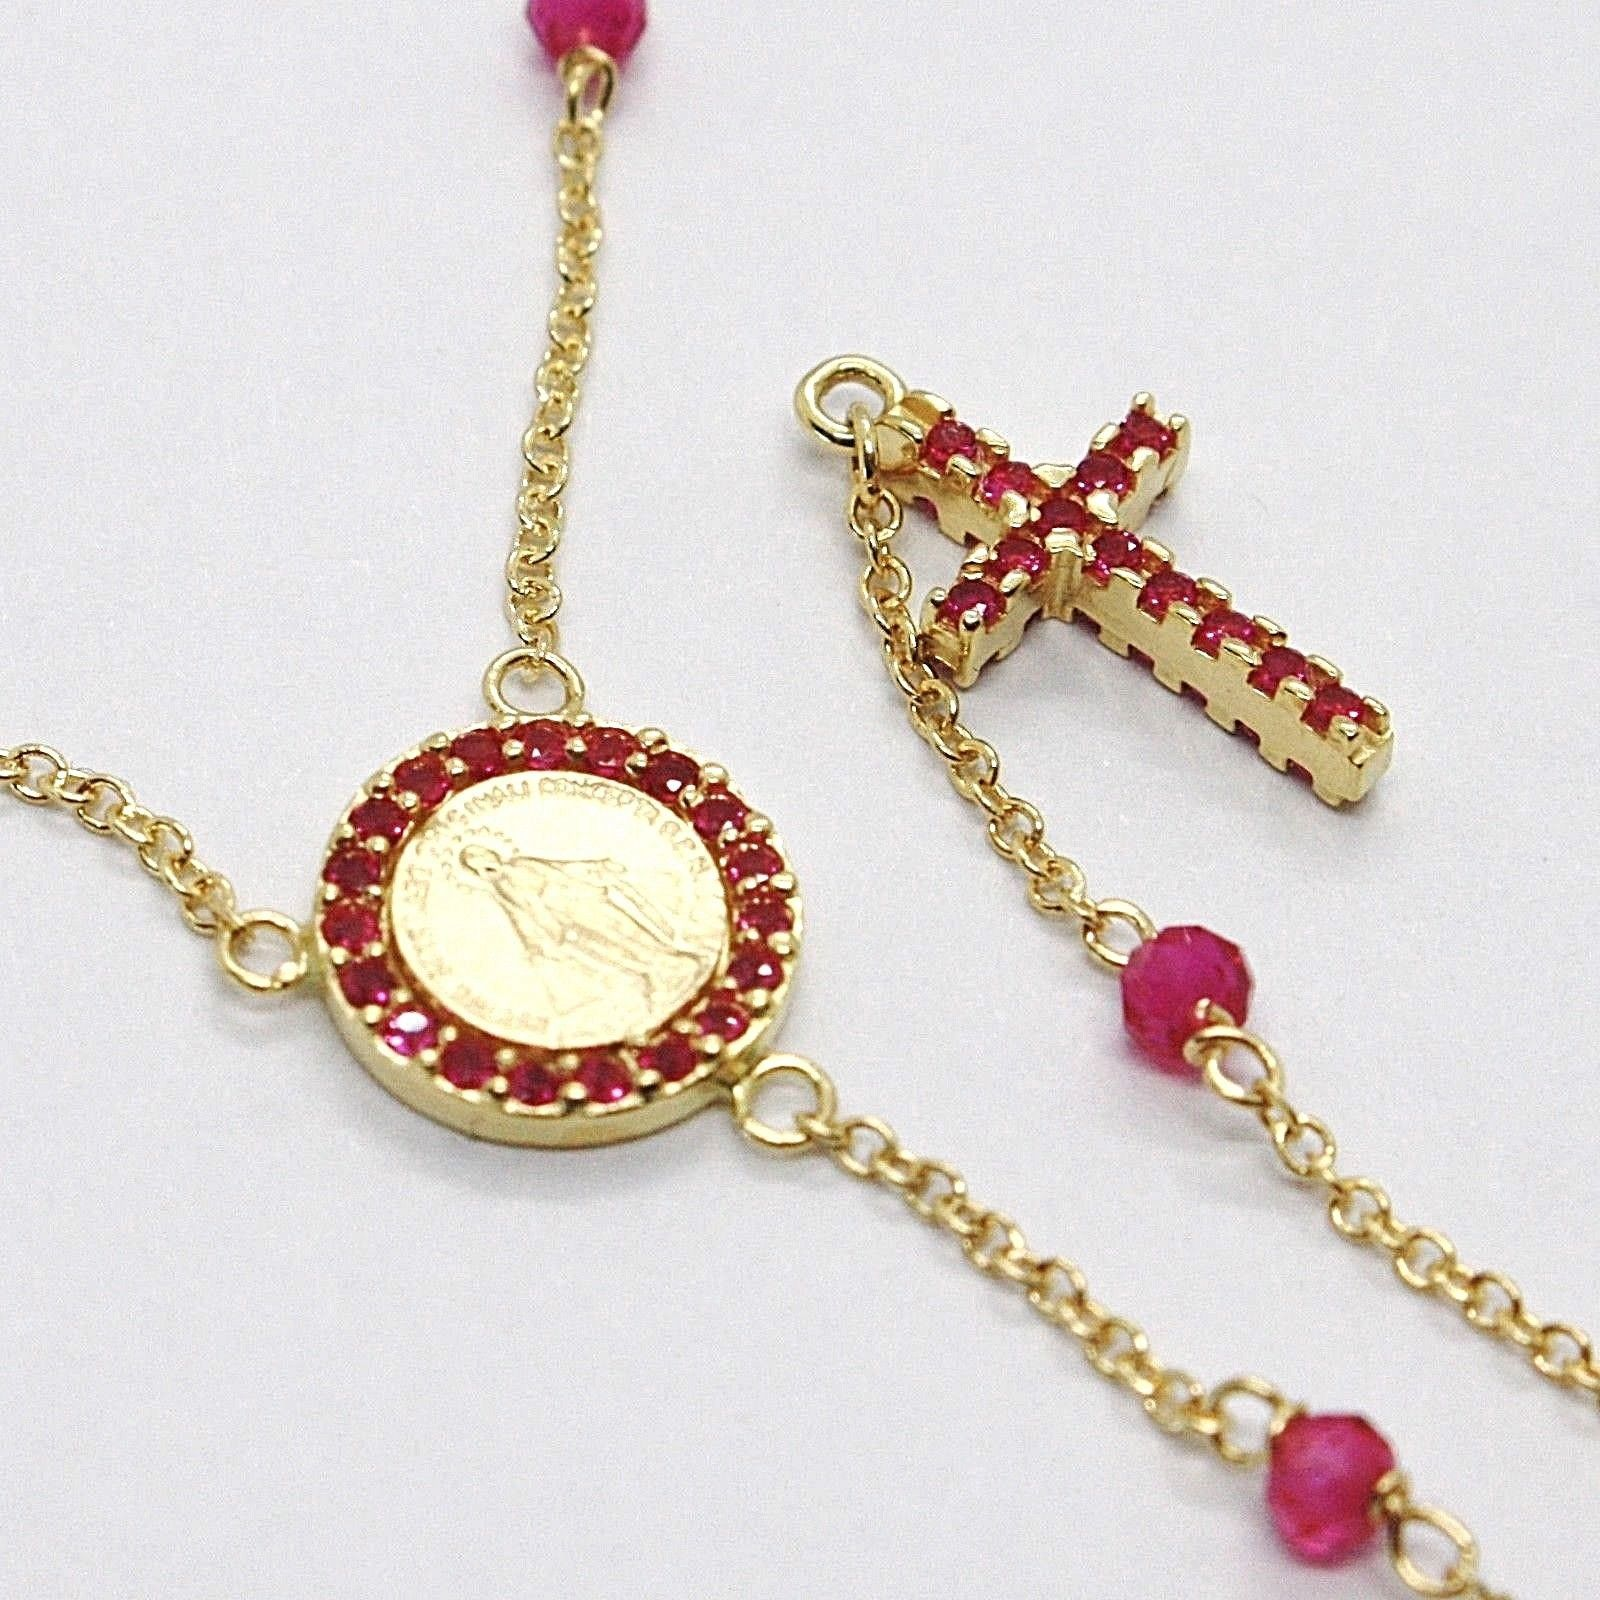 18K YELLOW GOLD ROSARY NECKLACE, FACETED RED RUBY ROOT, CROSS & MIRACULOUS MEDAL